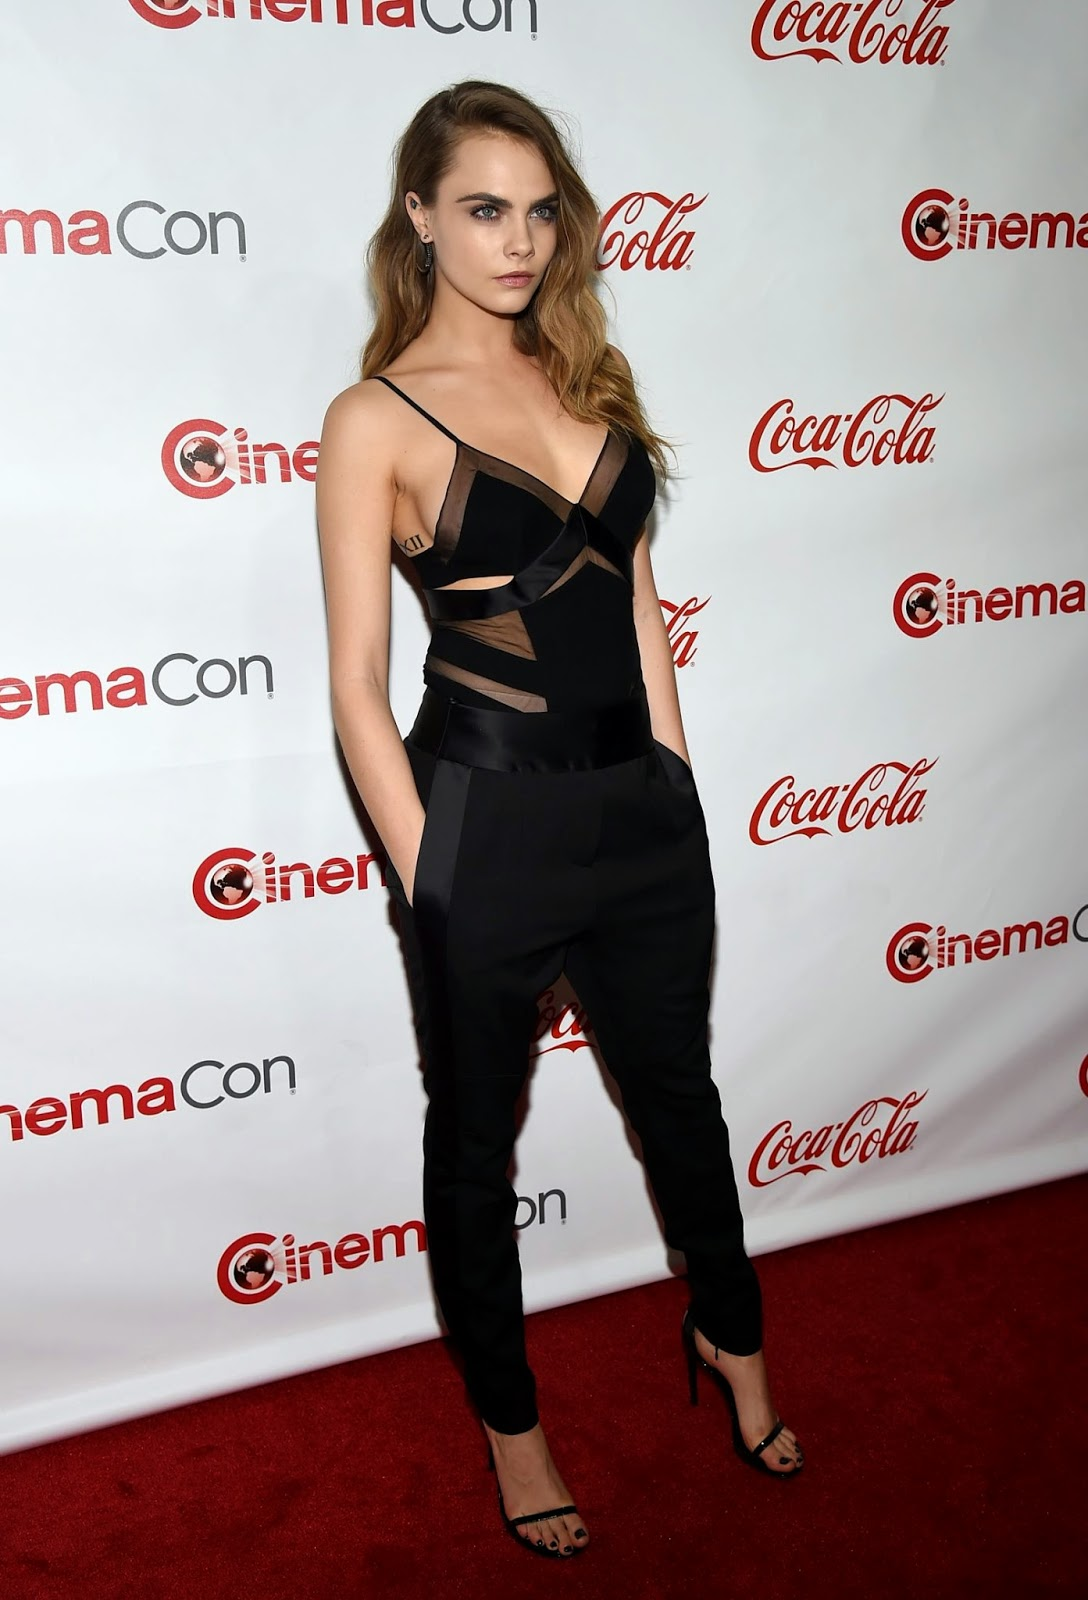 Cara Delevingne in a sheer chemise at the CinemaCon Big Screen Achievement Awards in Las Vegas